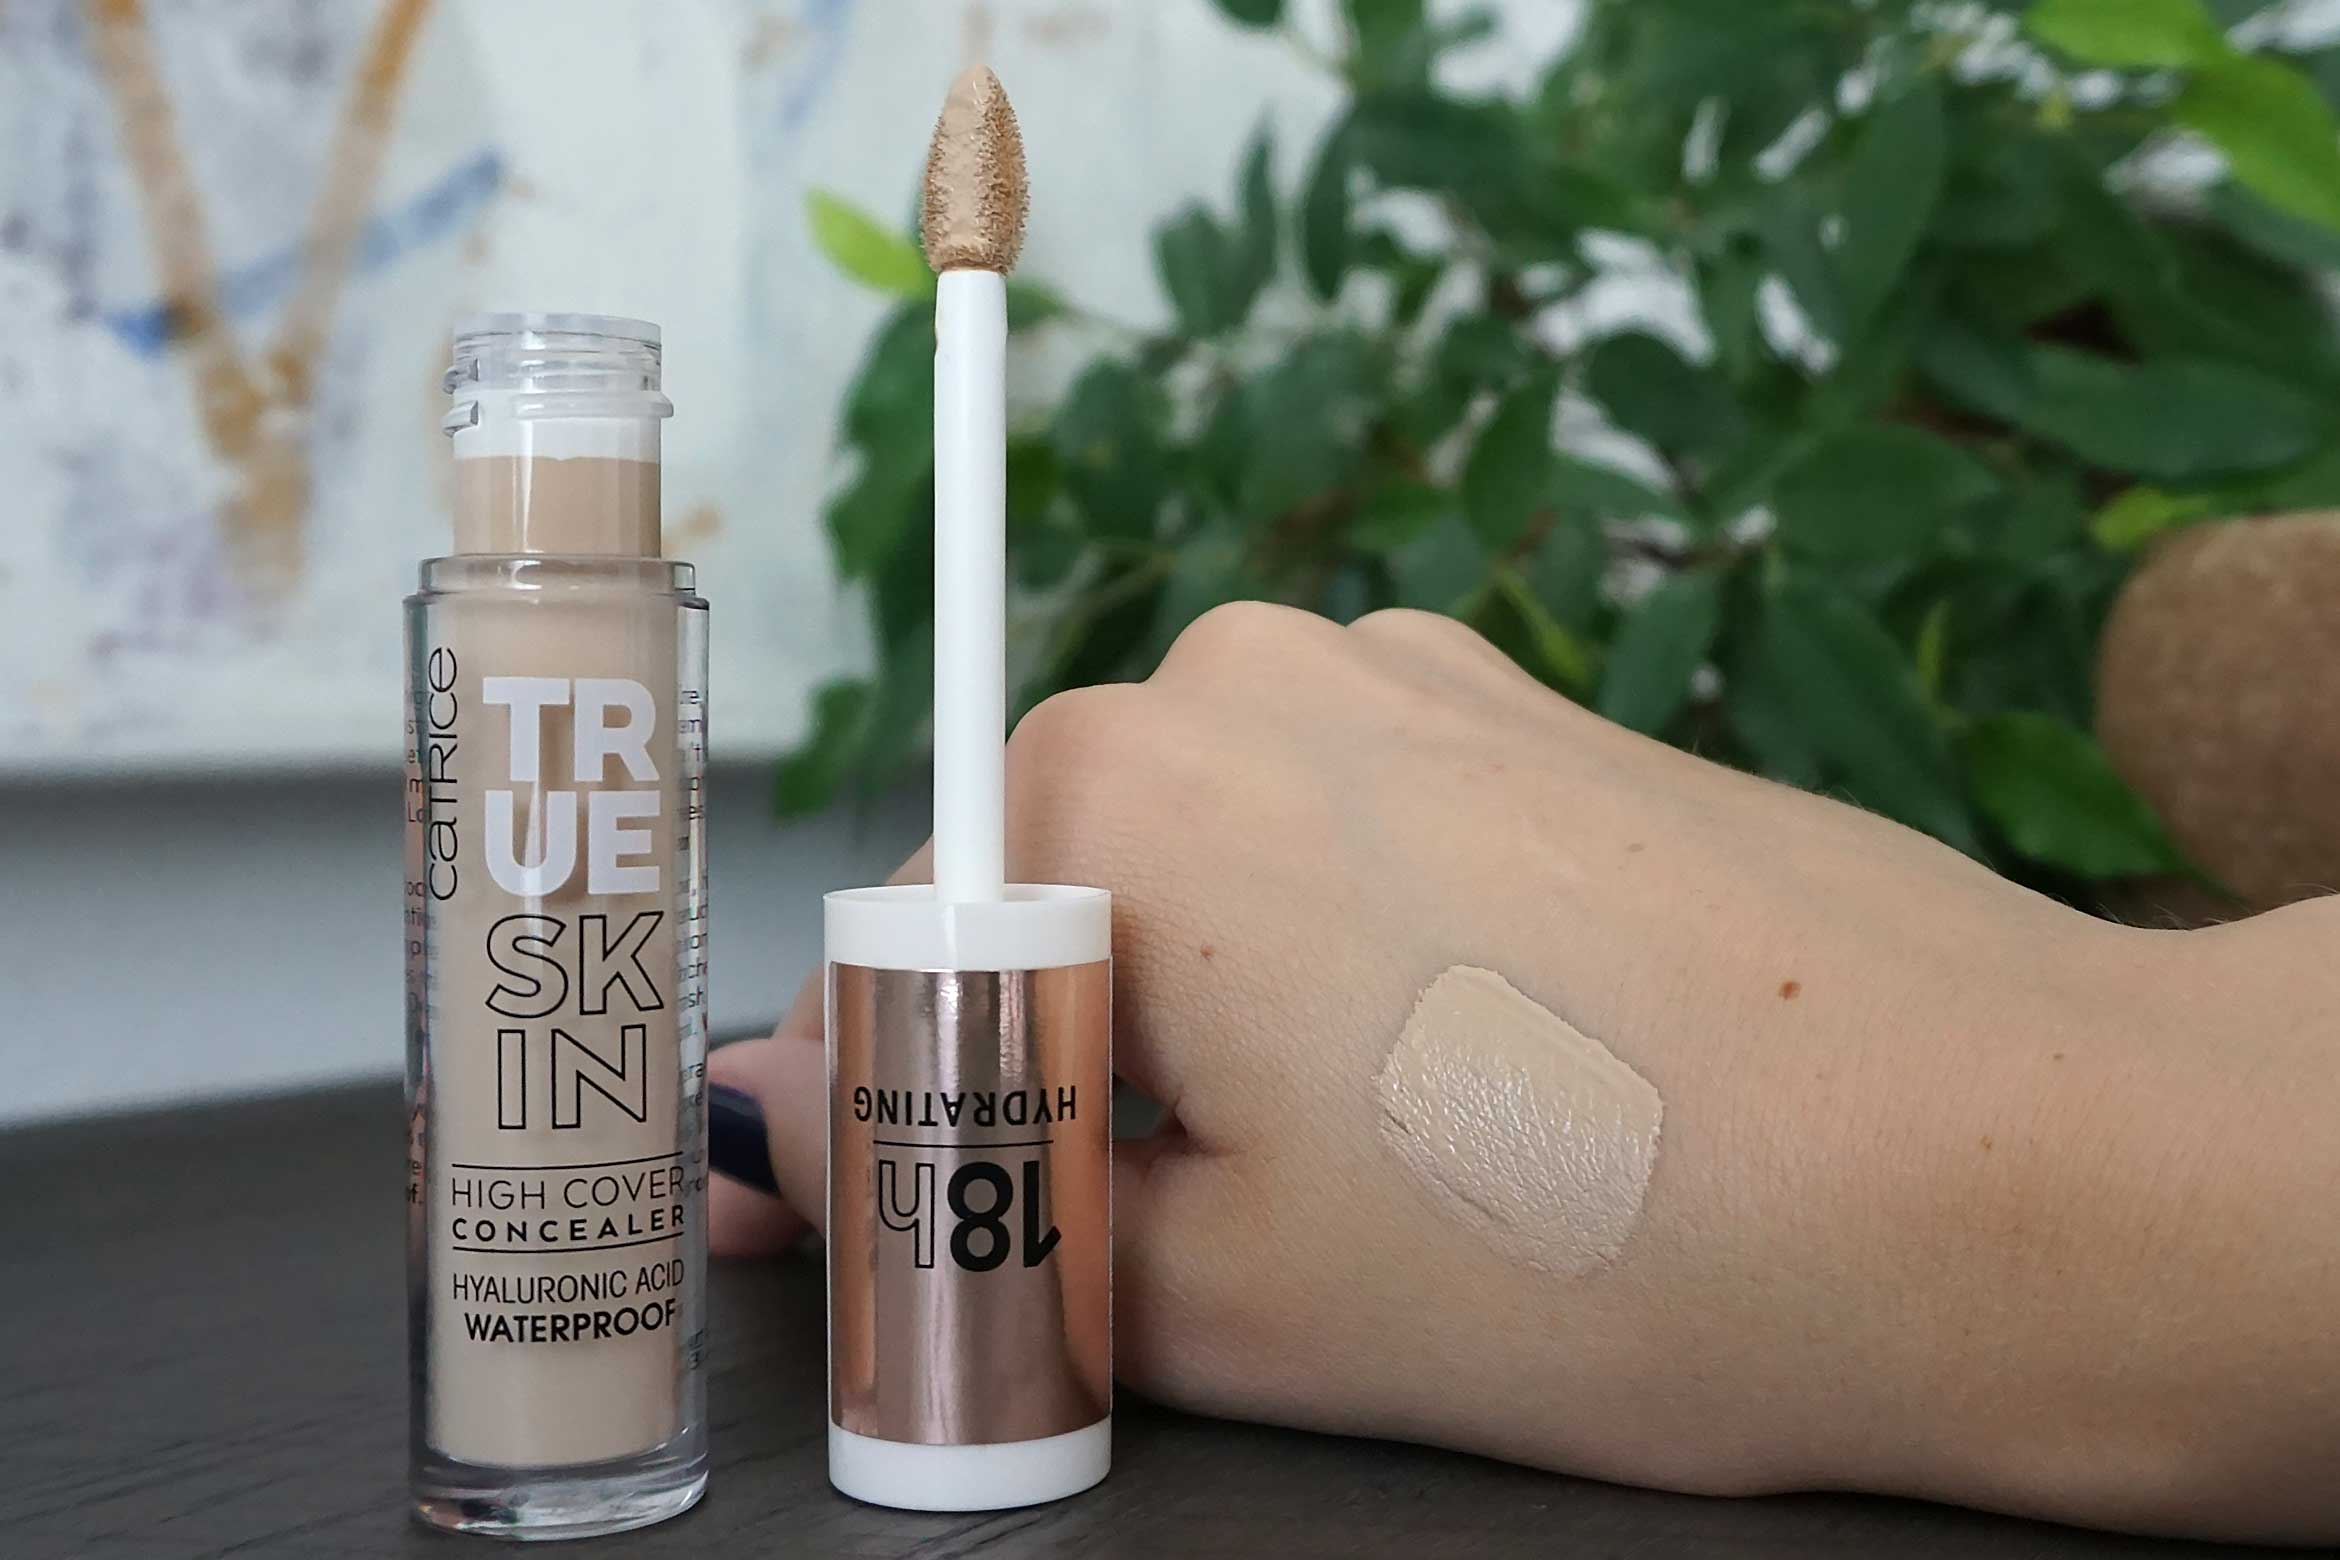 catrice true skin high cover concealer swatch 010 cool cashmere review